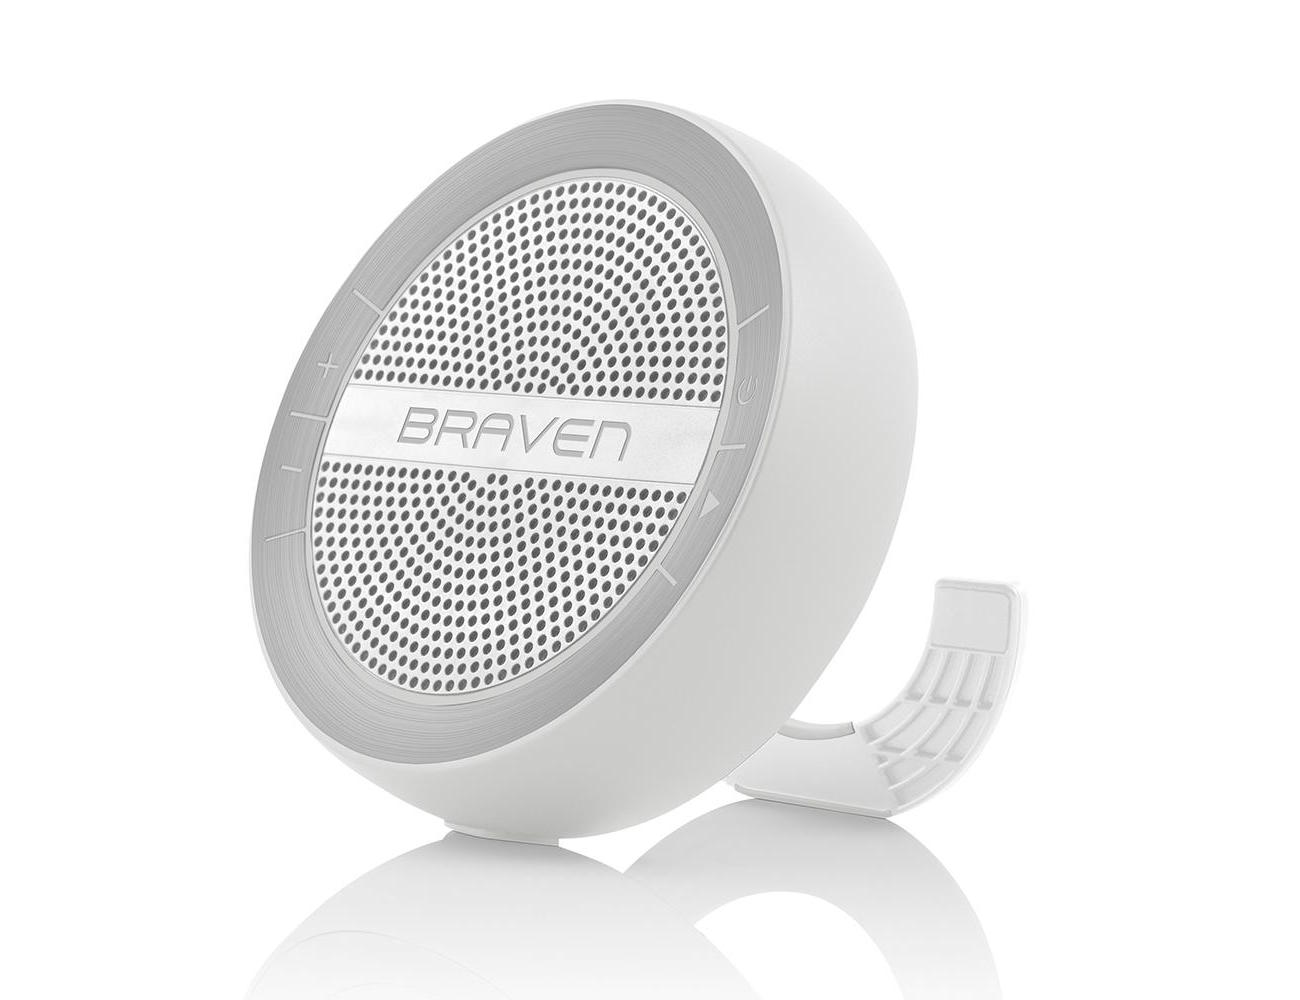 Braven Mira Portable Wireless Weatherproof Speaker